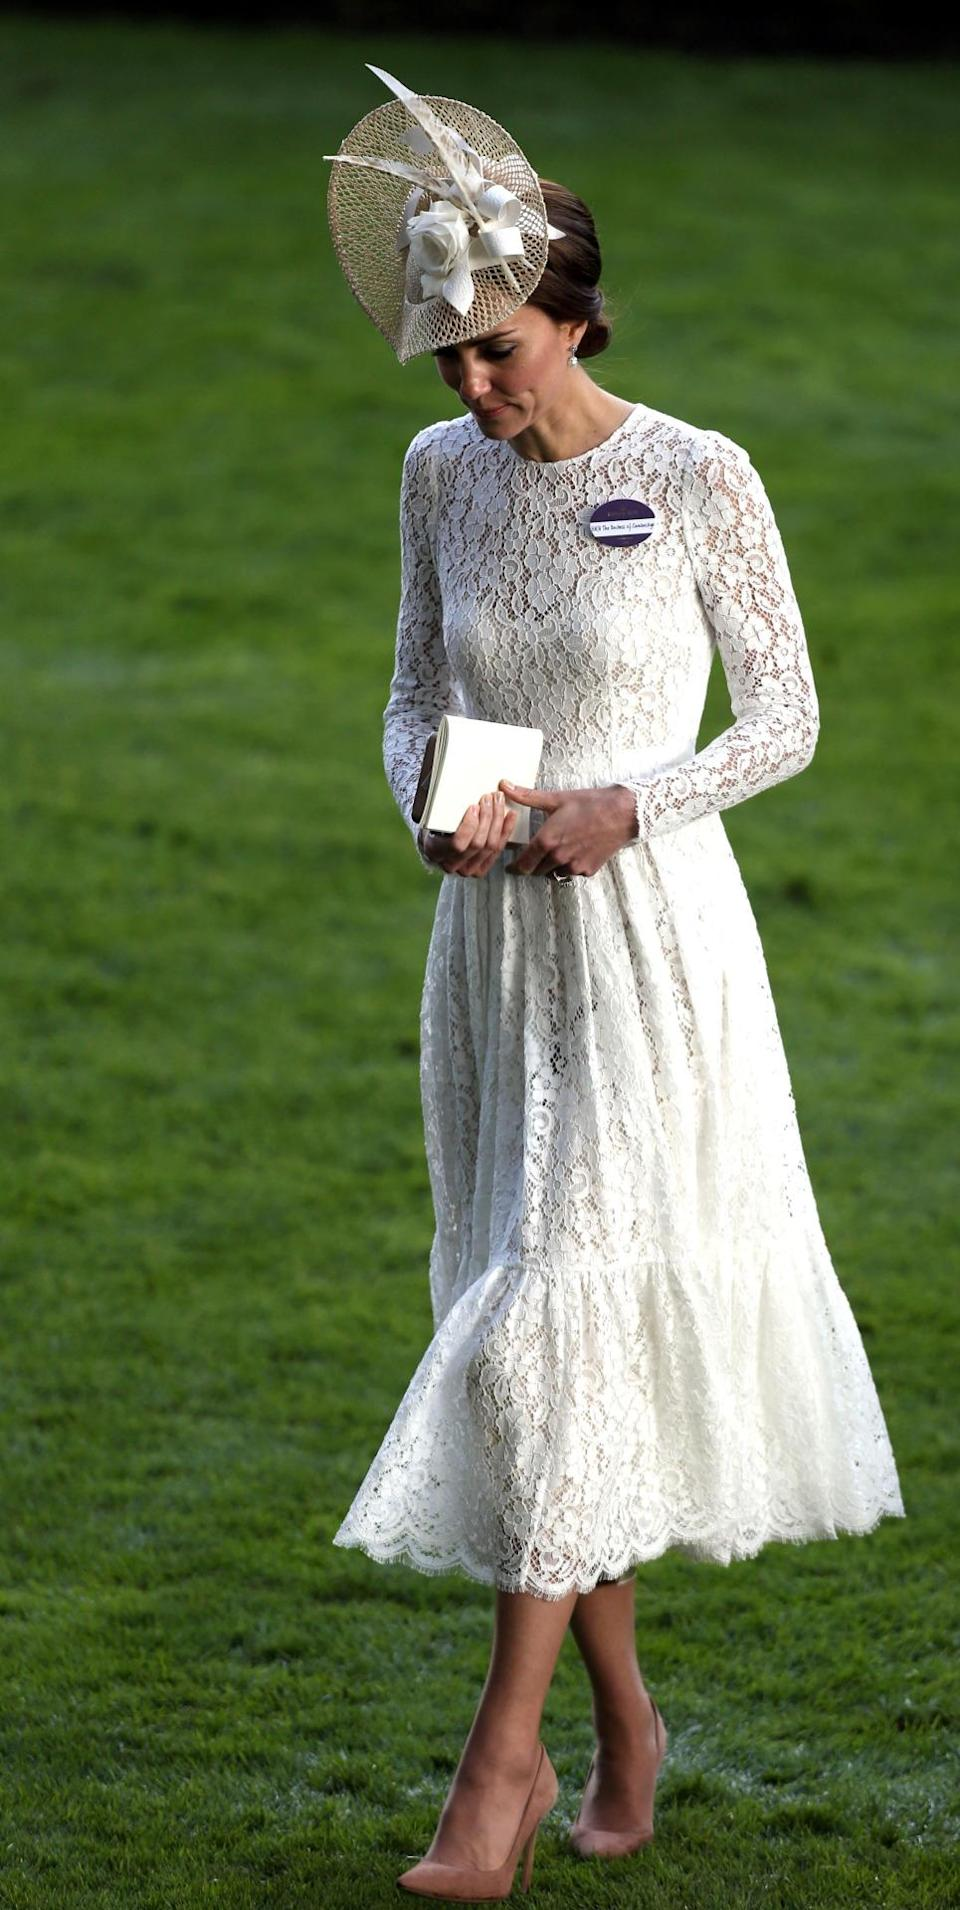 <p>For a Royal Ascot outing, Kate wore a romantic lace dress by Italian duo Dolce & Gabbana. An elegant hat and suede heels accessorised her My Fair Lady look.</p><p><i>[Photo: PA]</i></p>